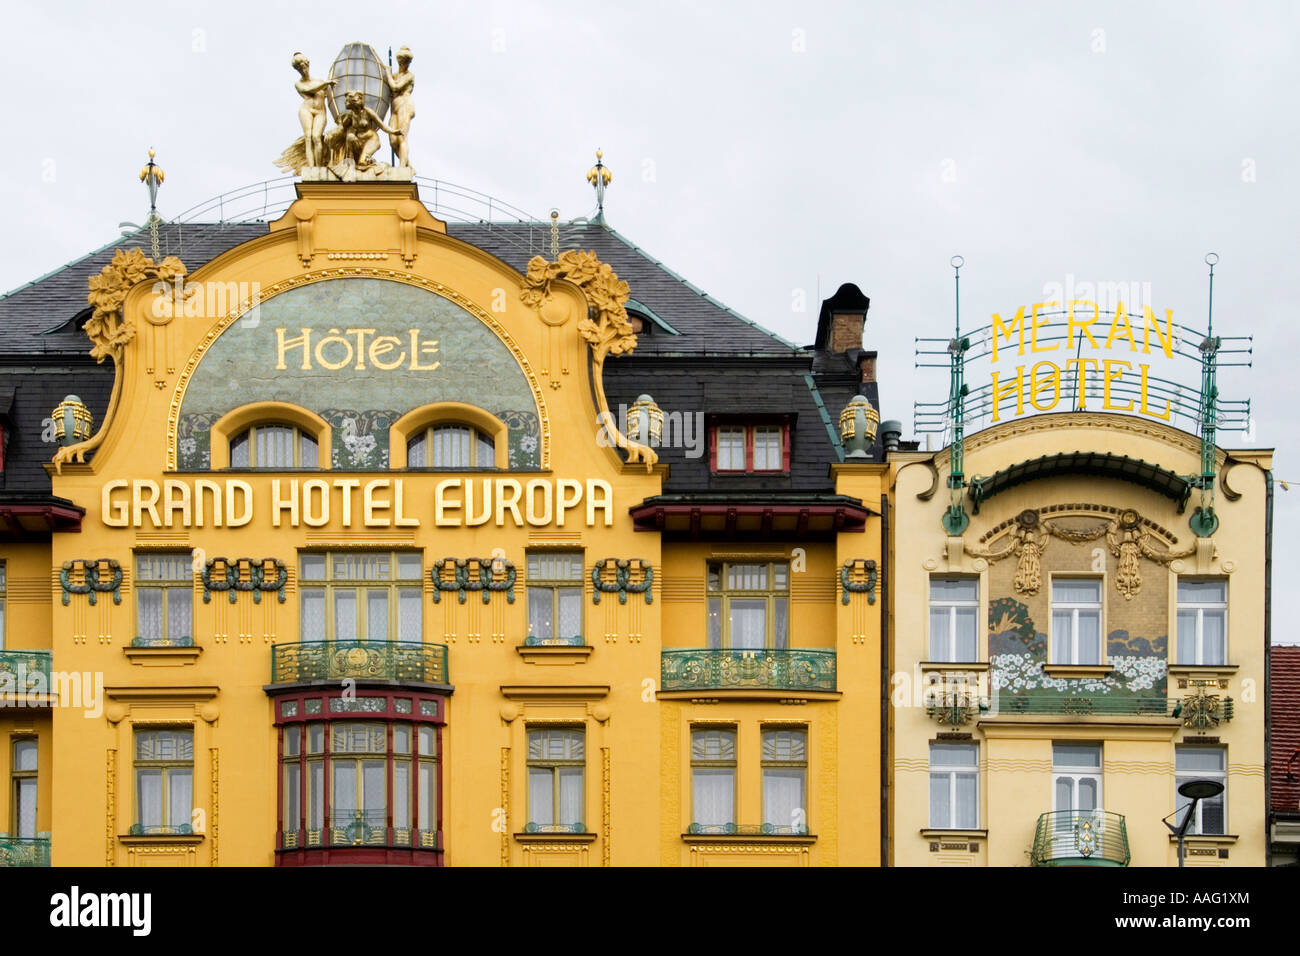 Art nouveau classics 39 grand hotel europa 39 and 39 meran for Grand hotel bohemia prague restaurant